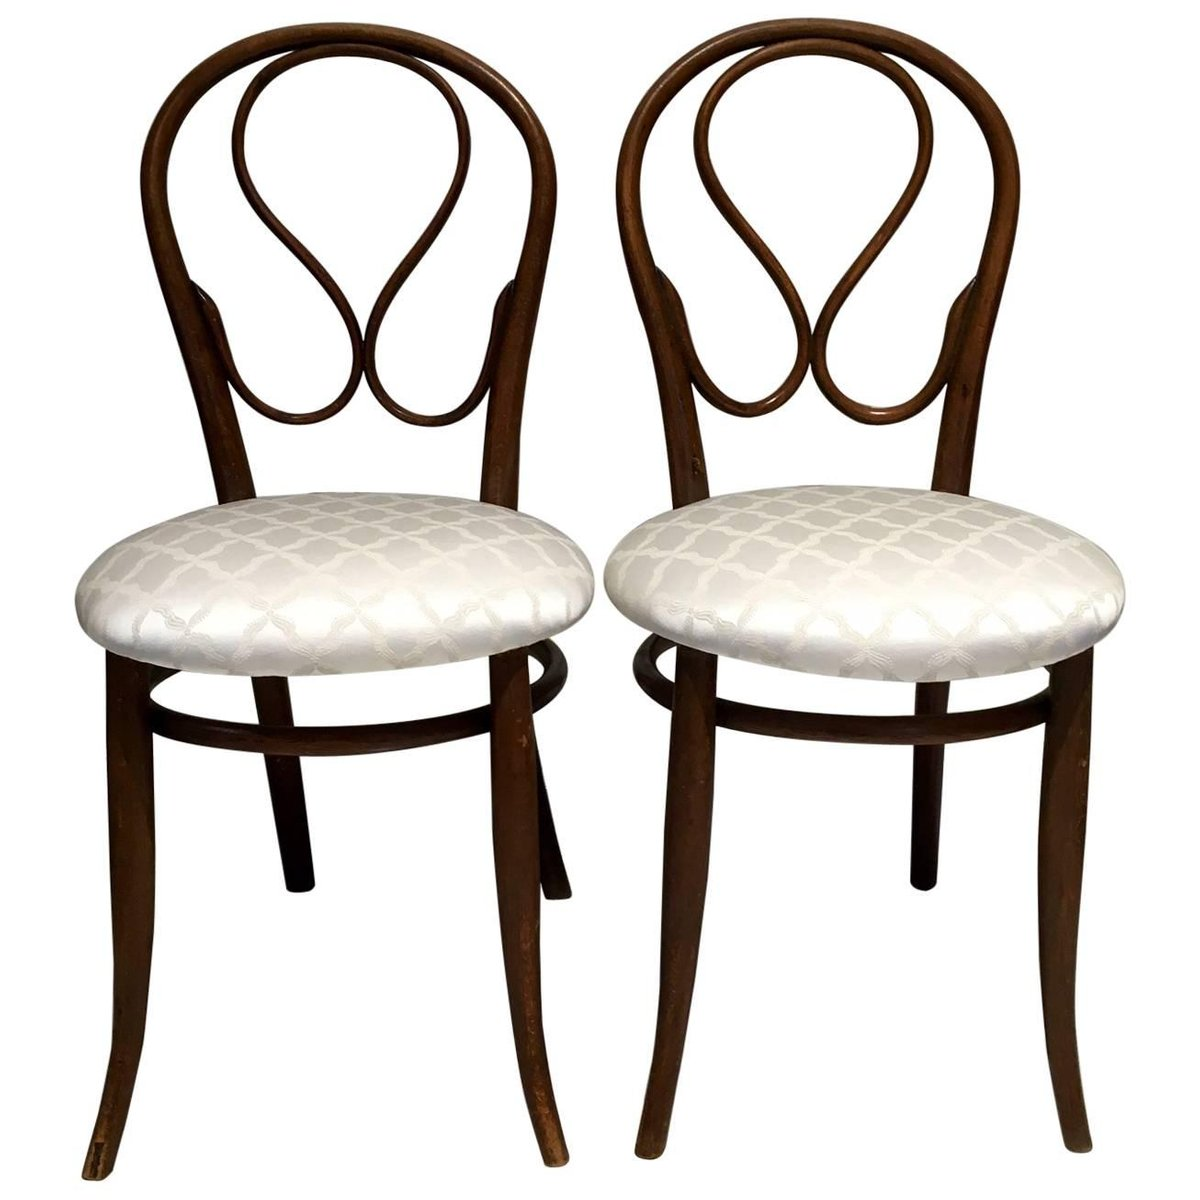 Antique Bentwood Chairs from Thonet, Set of 2 - Antique Bentwood Chairs From Thonet, Set Of 2 For Sale At Pamono